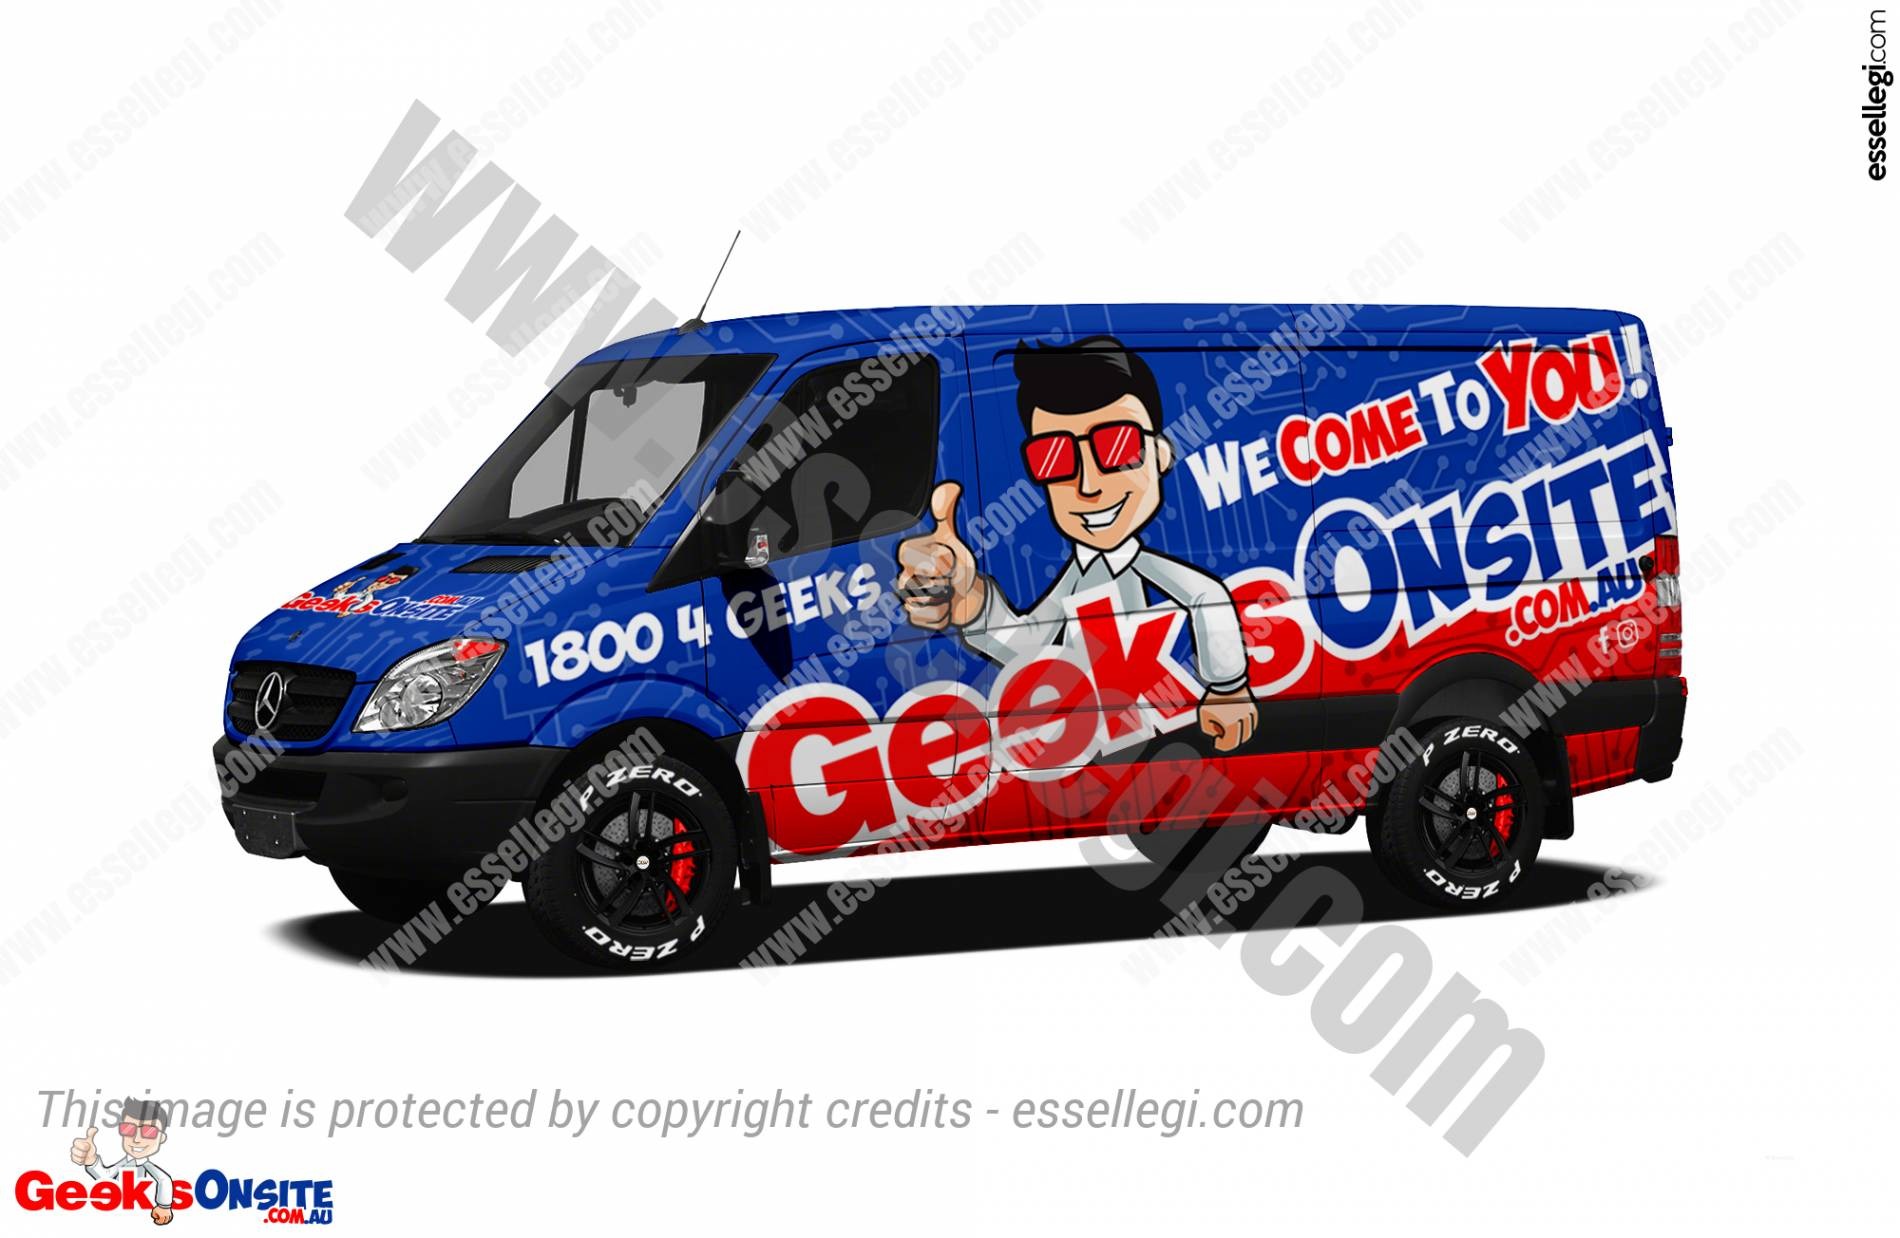 Mercedes Sprinter Wrap Design. Mercedes Sprinter | Van Wrap Design by Essellegi. Van Signs, Van Signage, Van Wrapping, Van Signwriting, Van Wrap Designer, Signs for Van, Van Logo, Van Graphic by Essellegi.